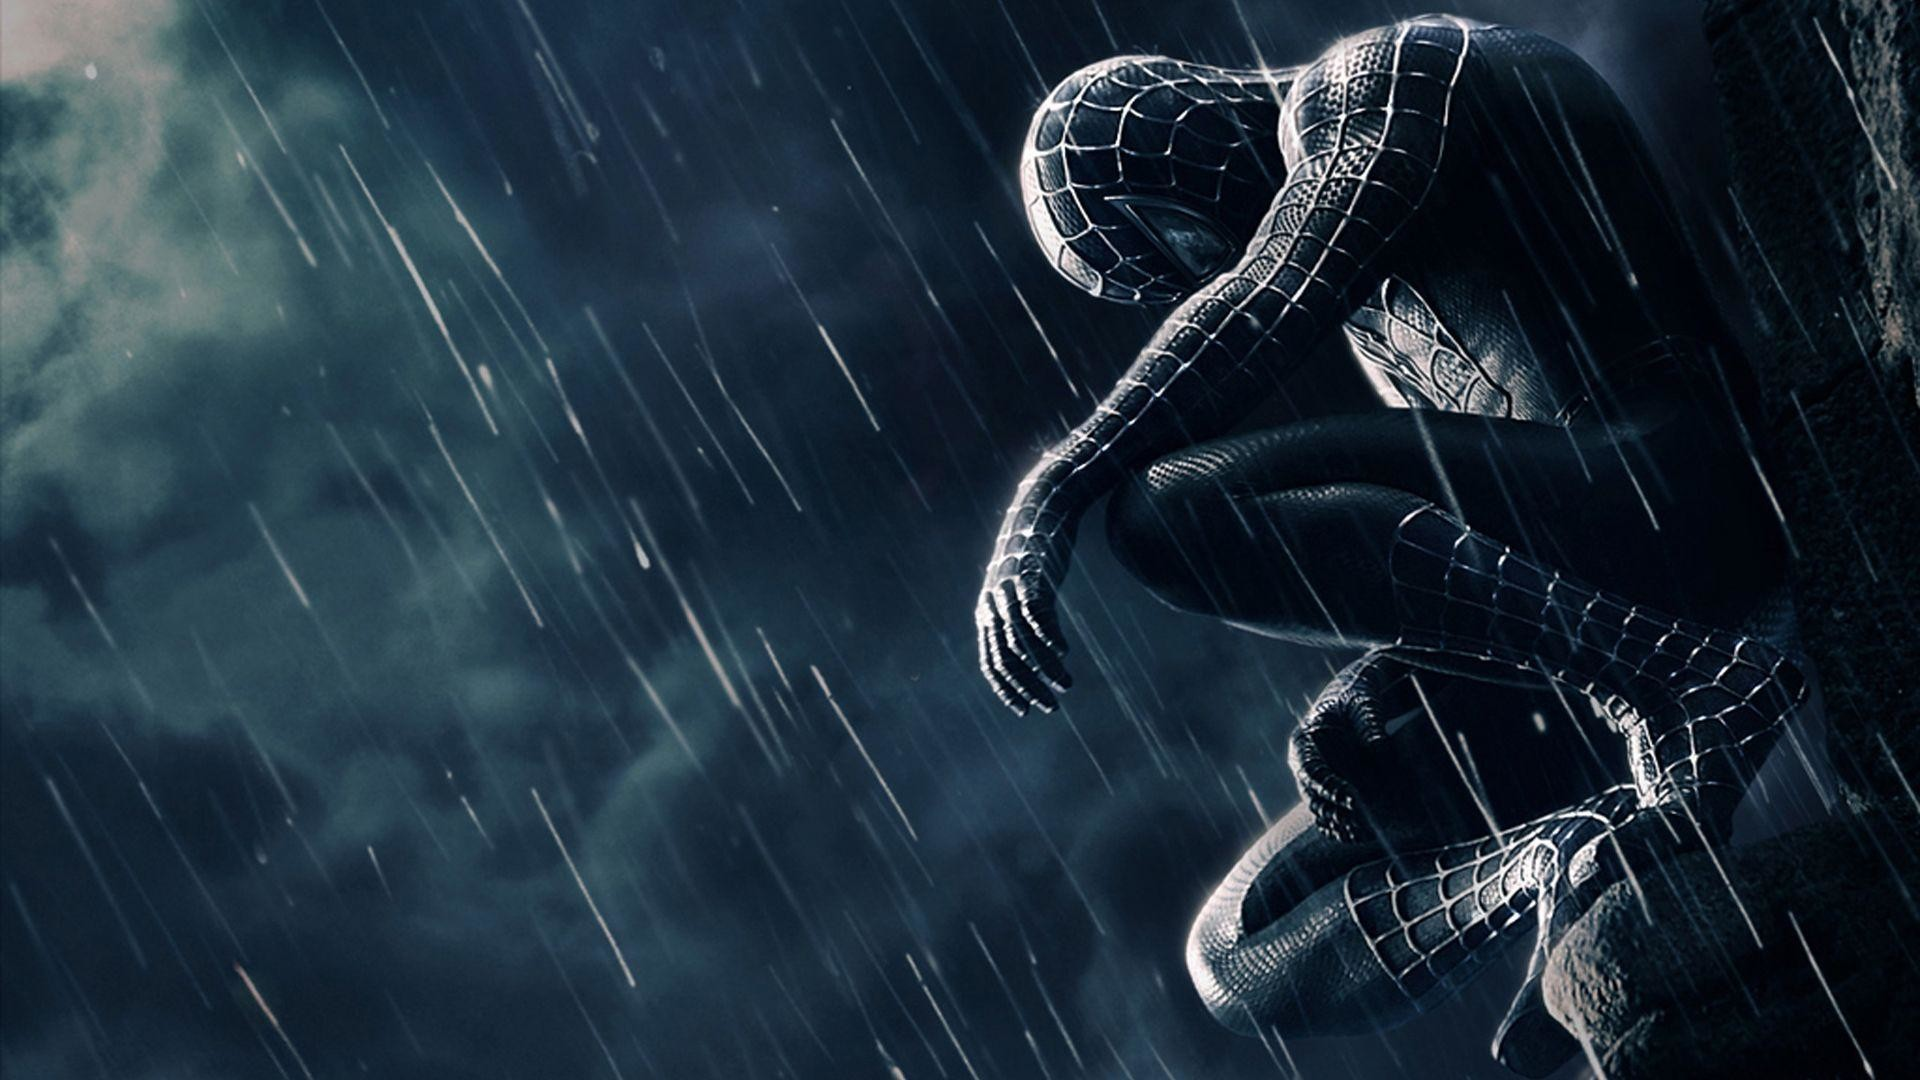 Most Inspiring Wallpaper Mac Spiderman - 886658-minimal-spiderman-wallpapers-1920x1080-macbook  Pic_852097.jpg